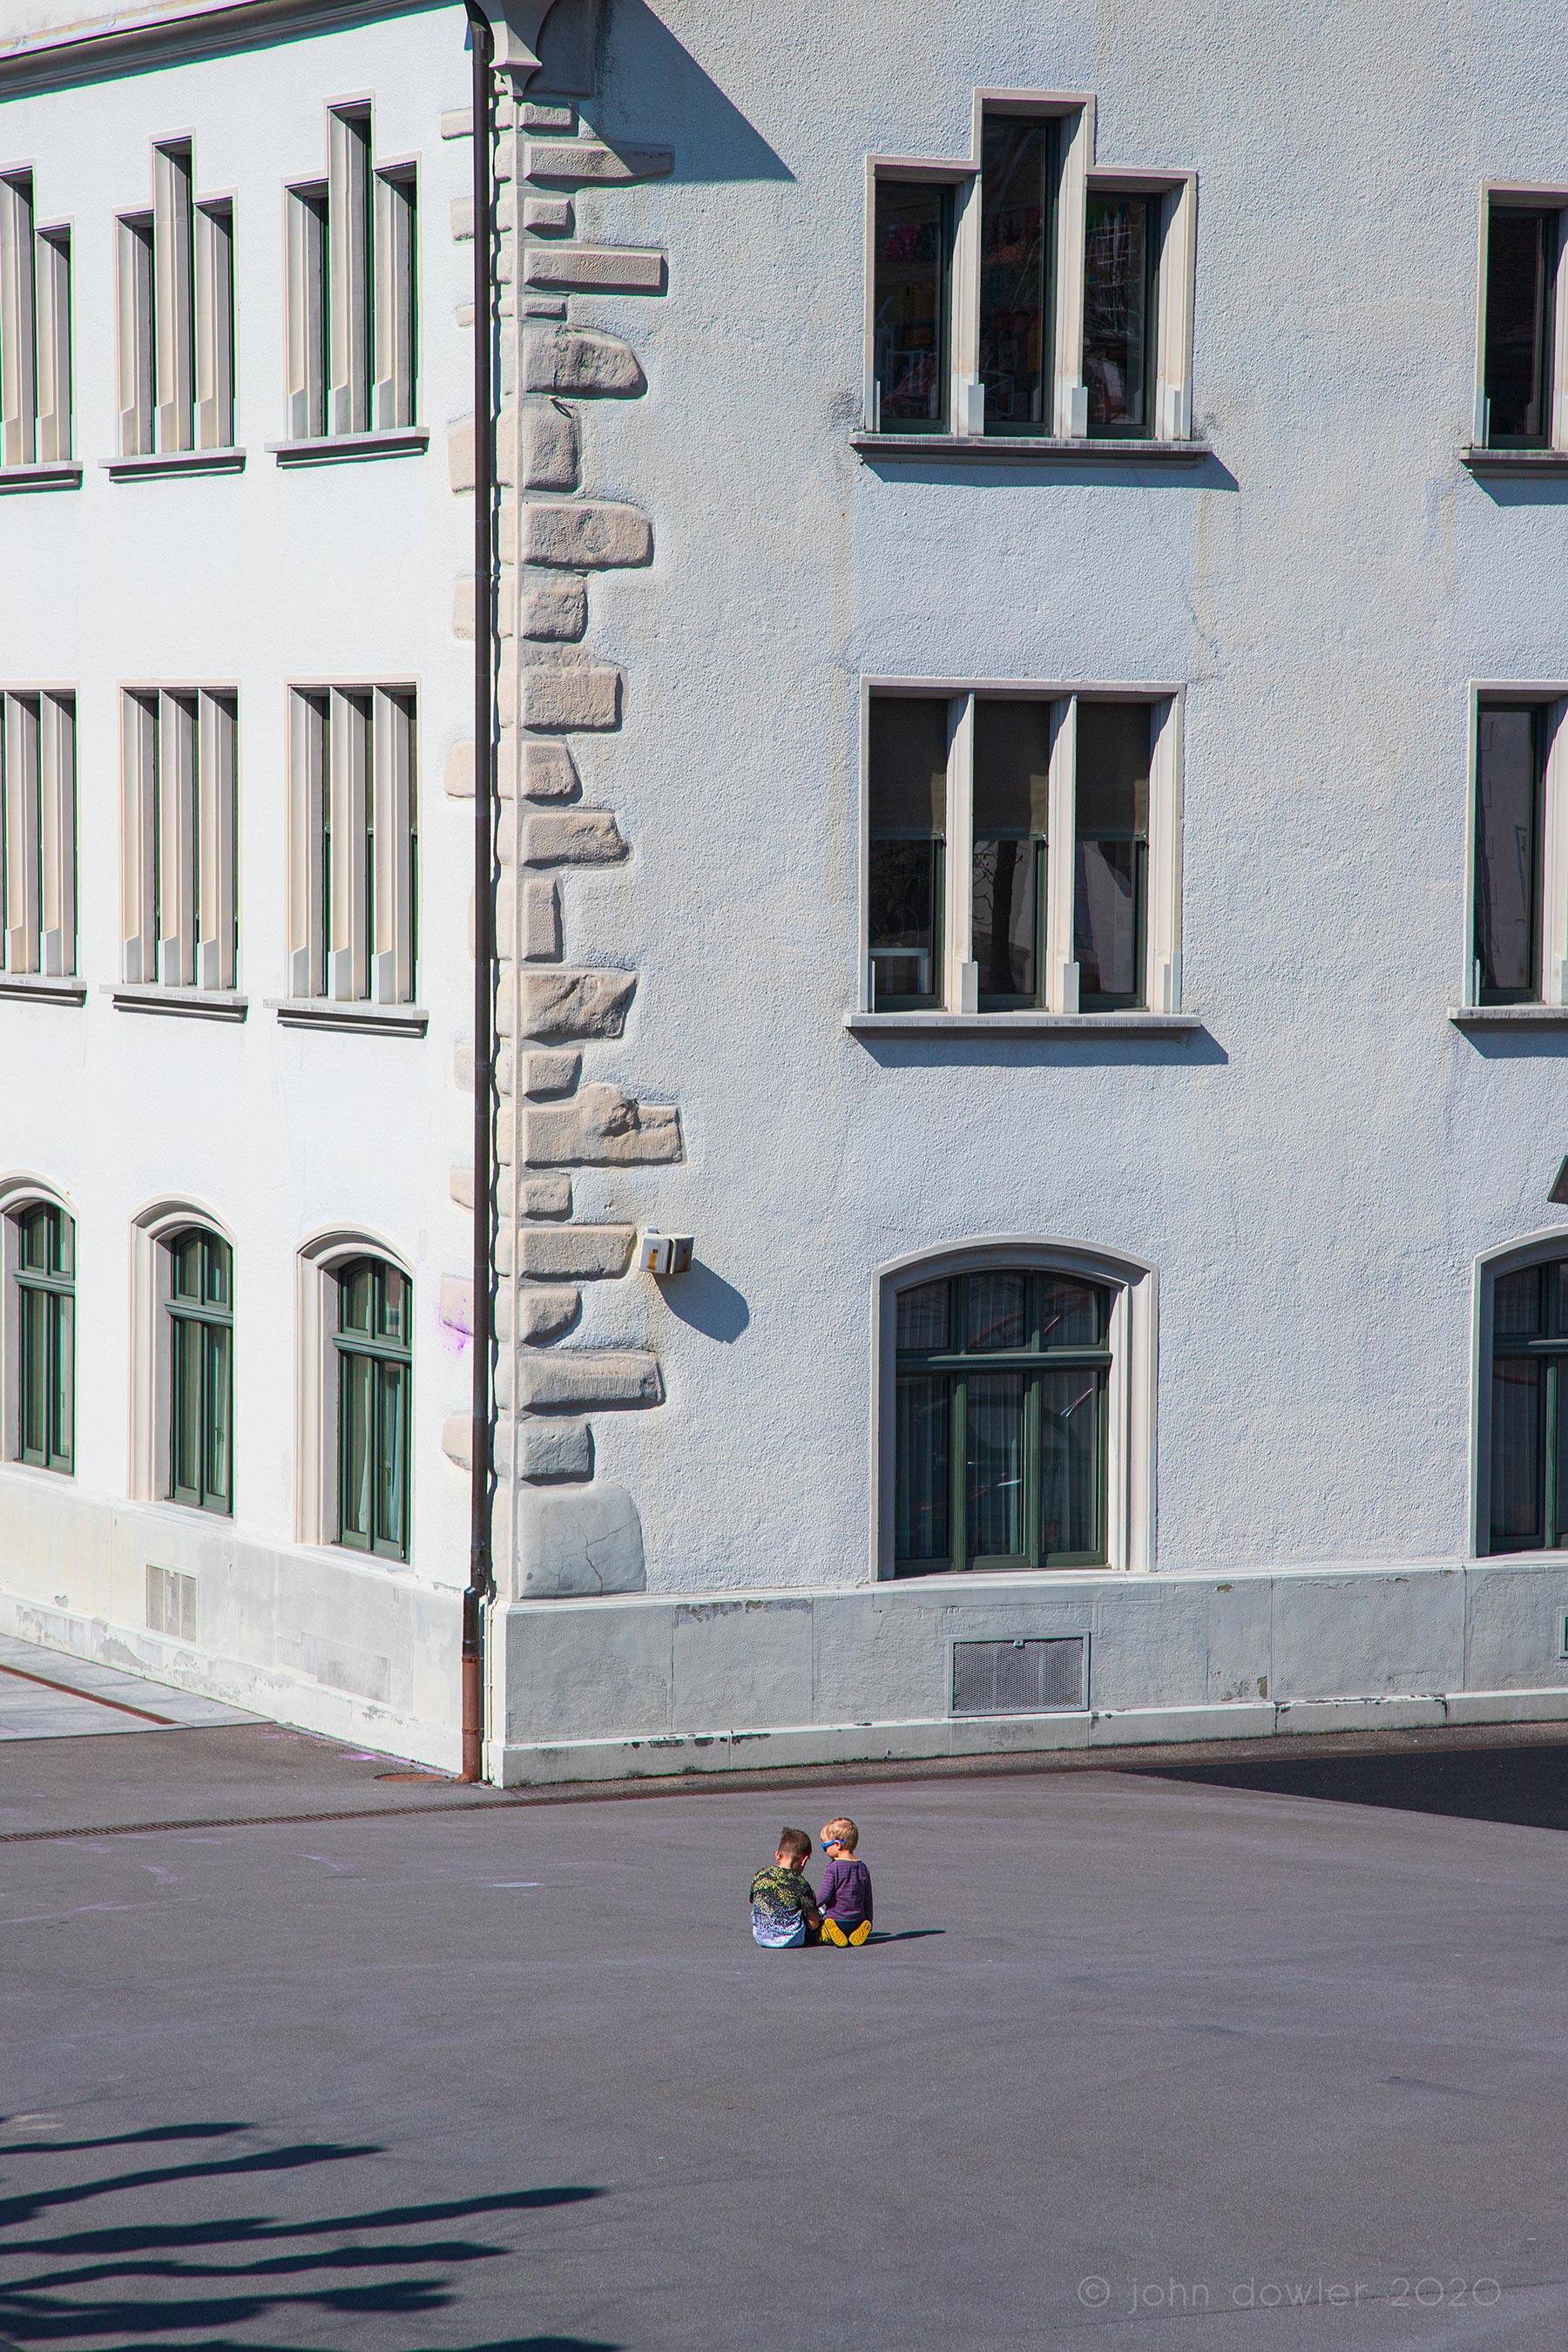 in a broad courtyard beneath a tall white building two tiny boys face away from the camera looking at something in their hands.